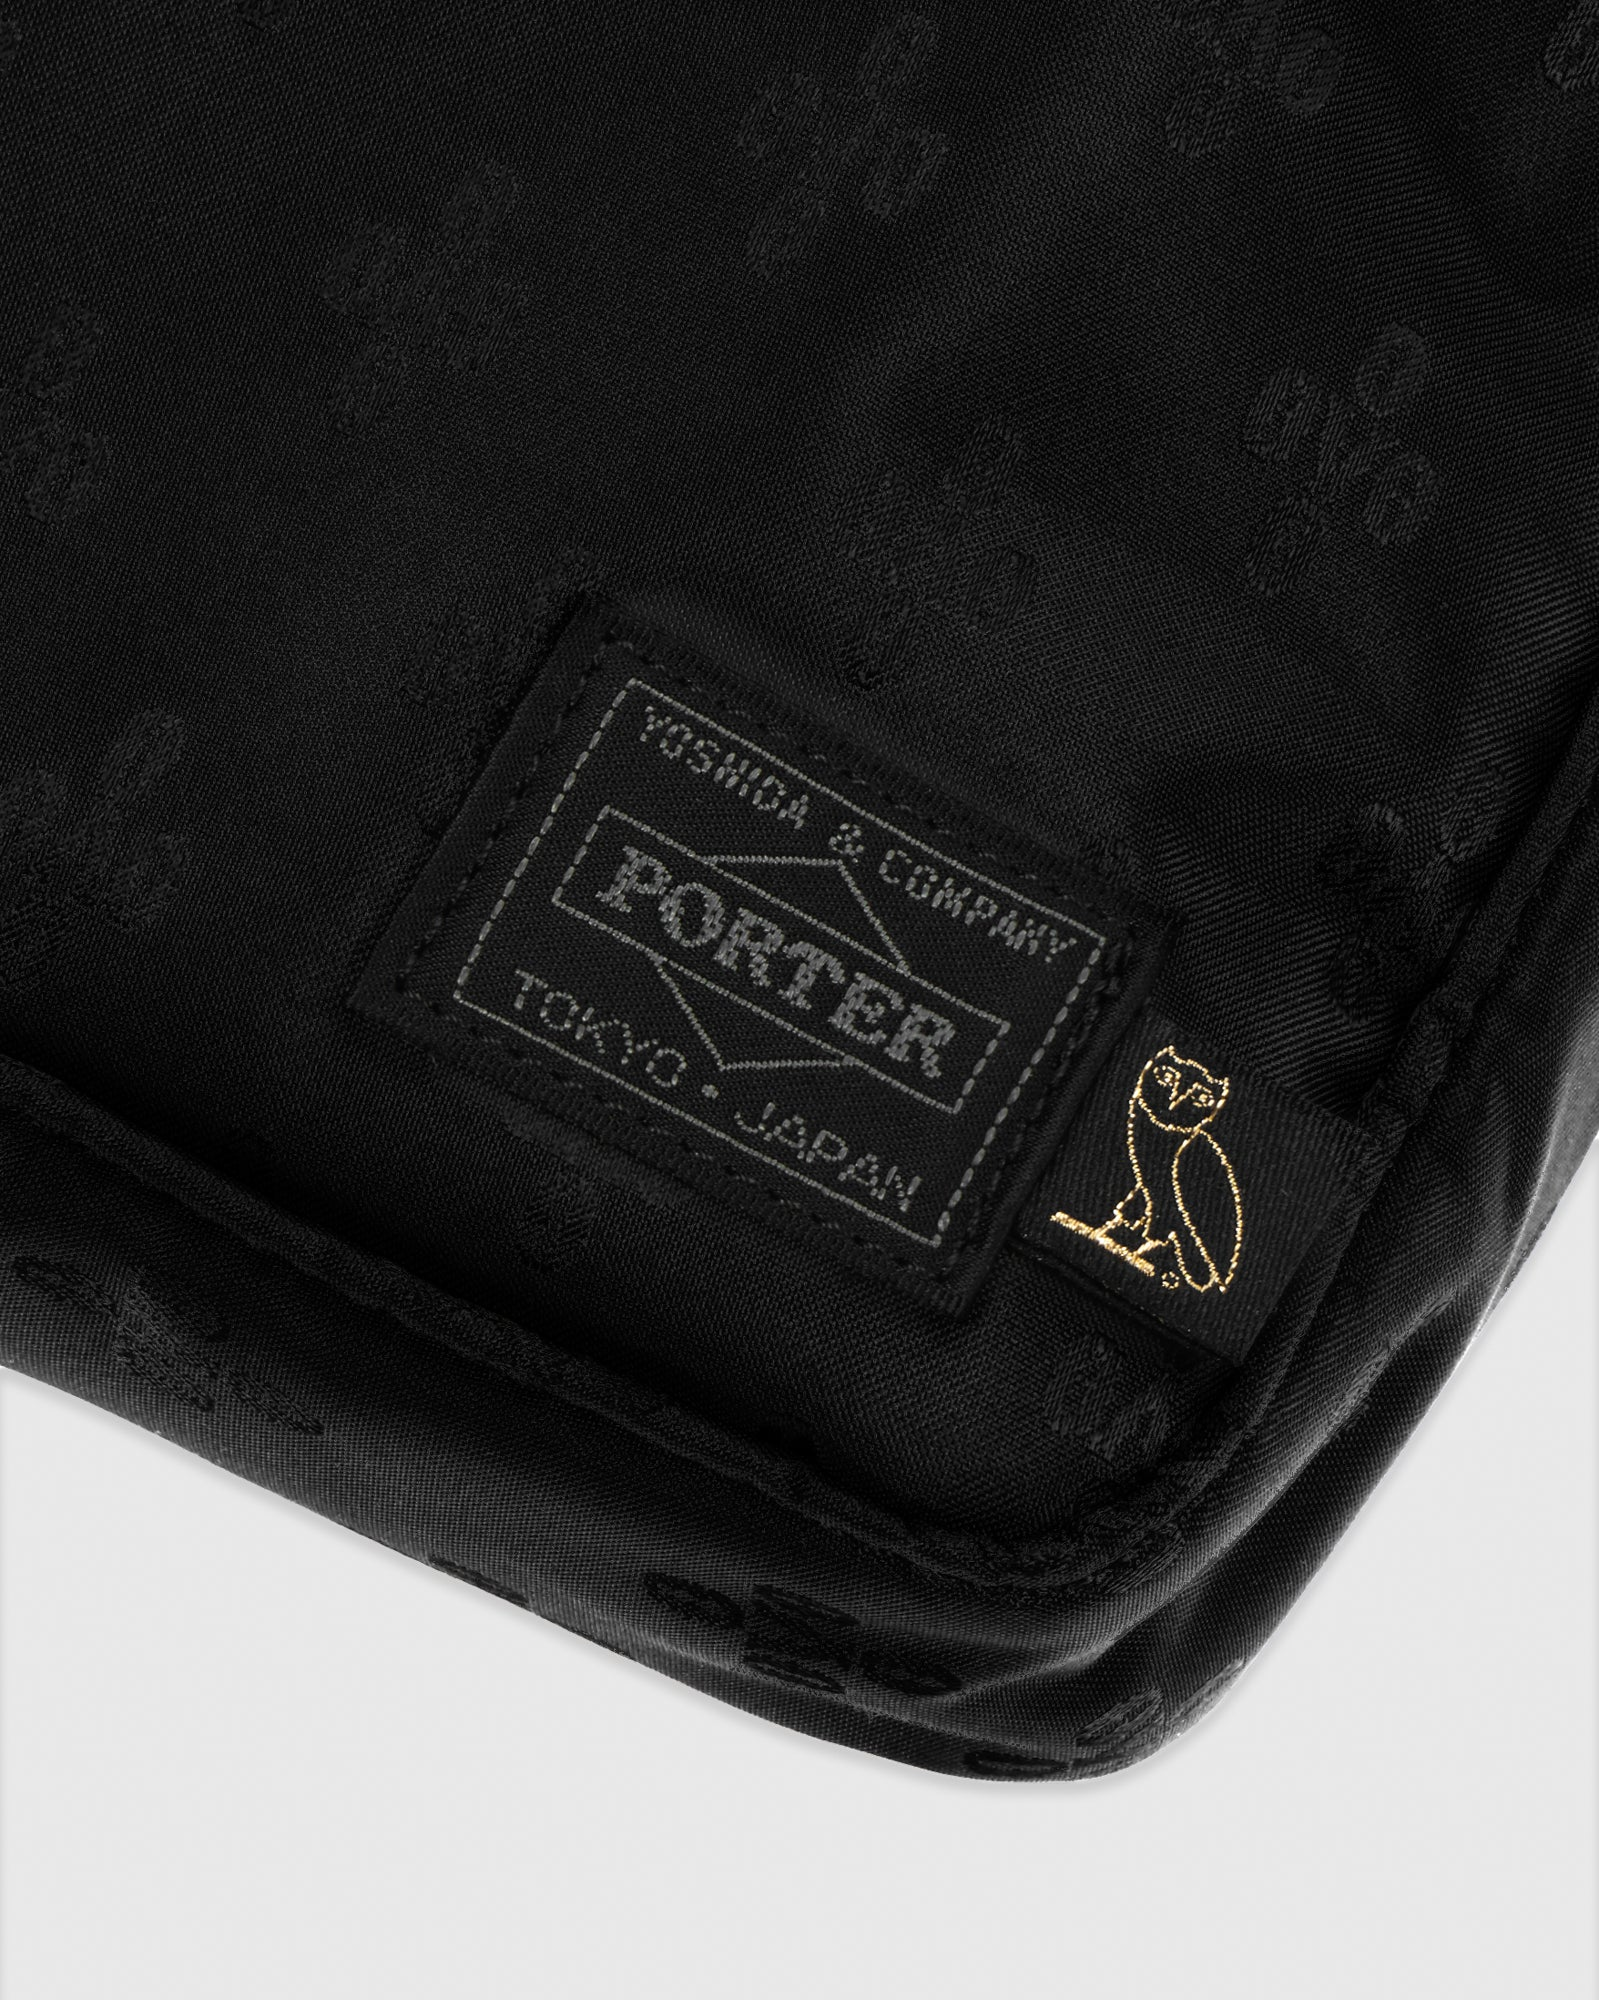 OVO X PORTER SHOULDER BAG - BLACK IMAGE #3